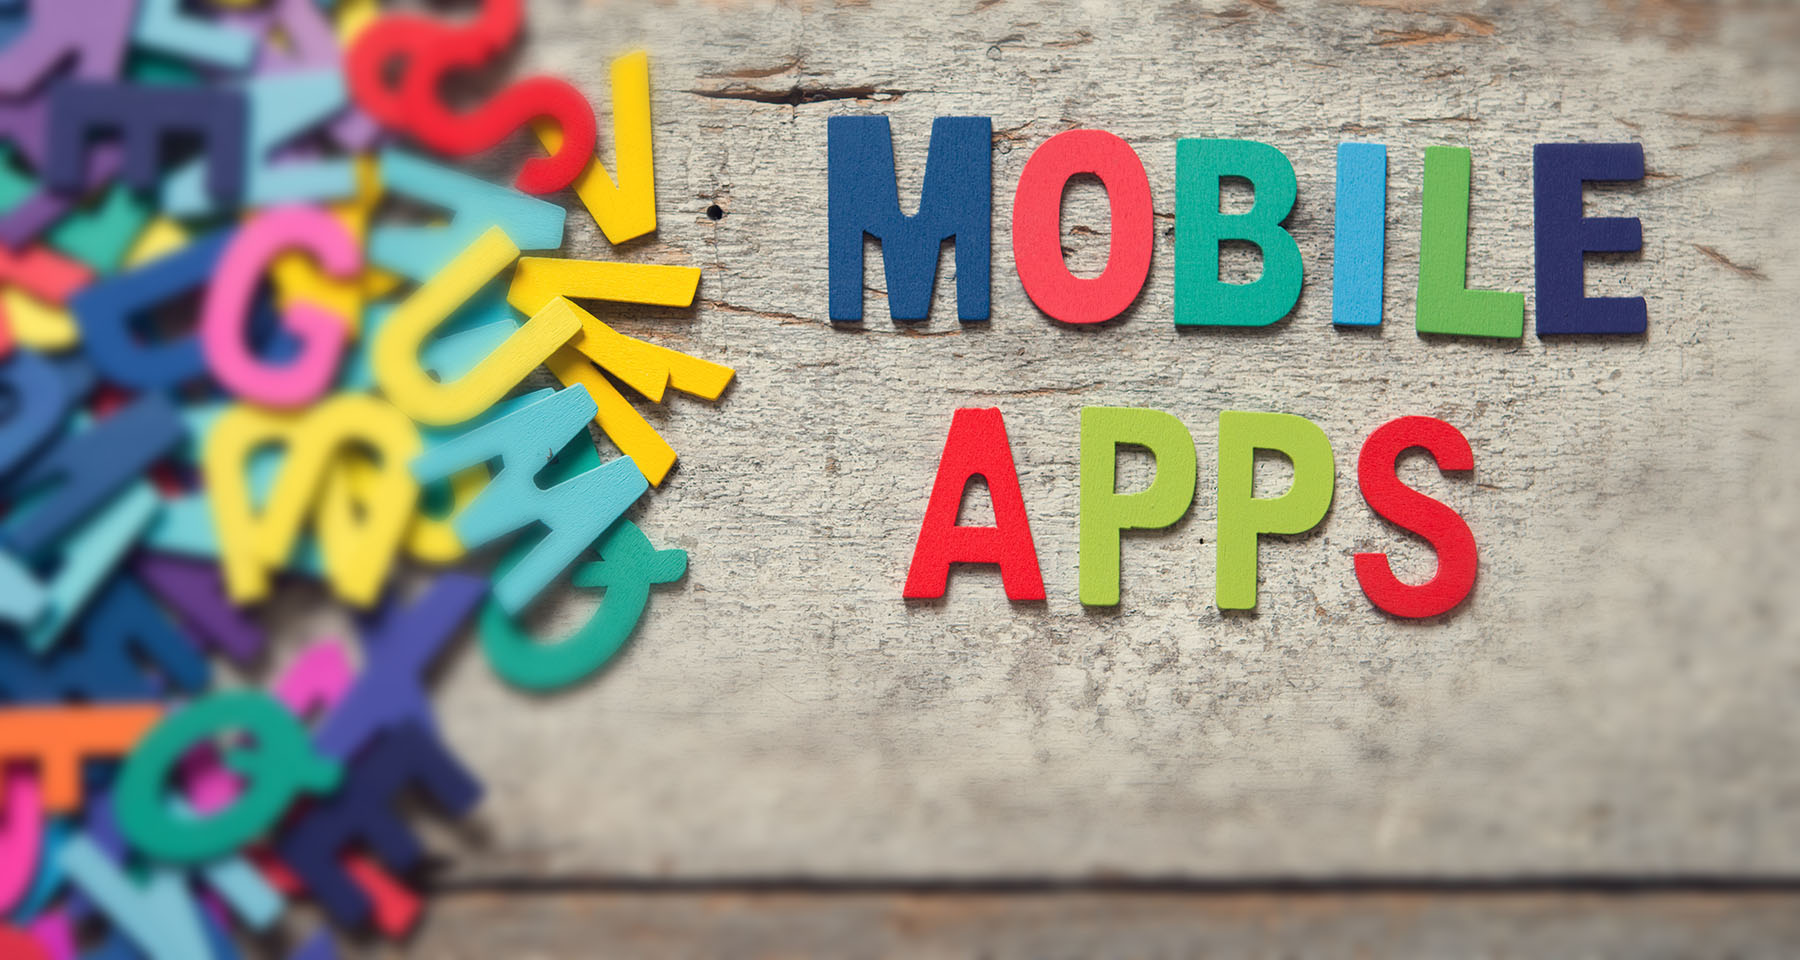 App download dip signals need to focus on comprehensive mobile strategies